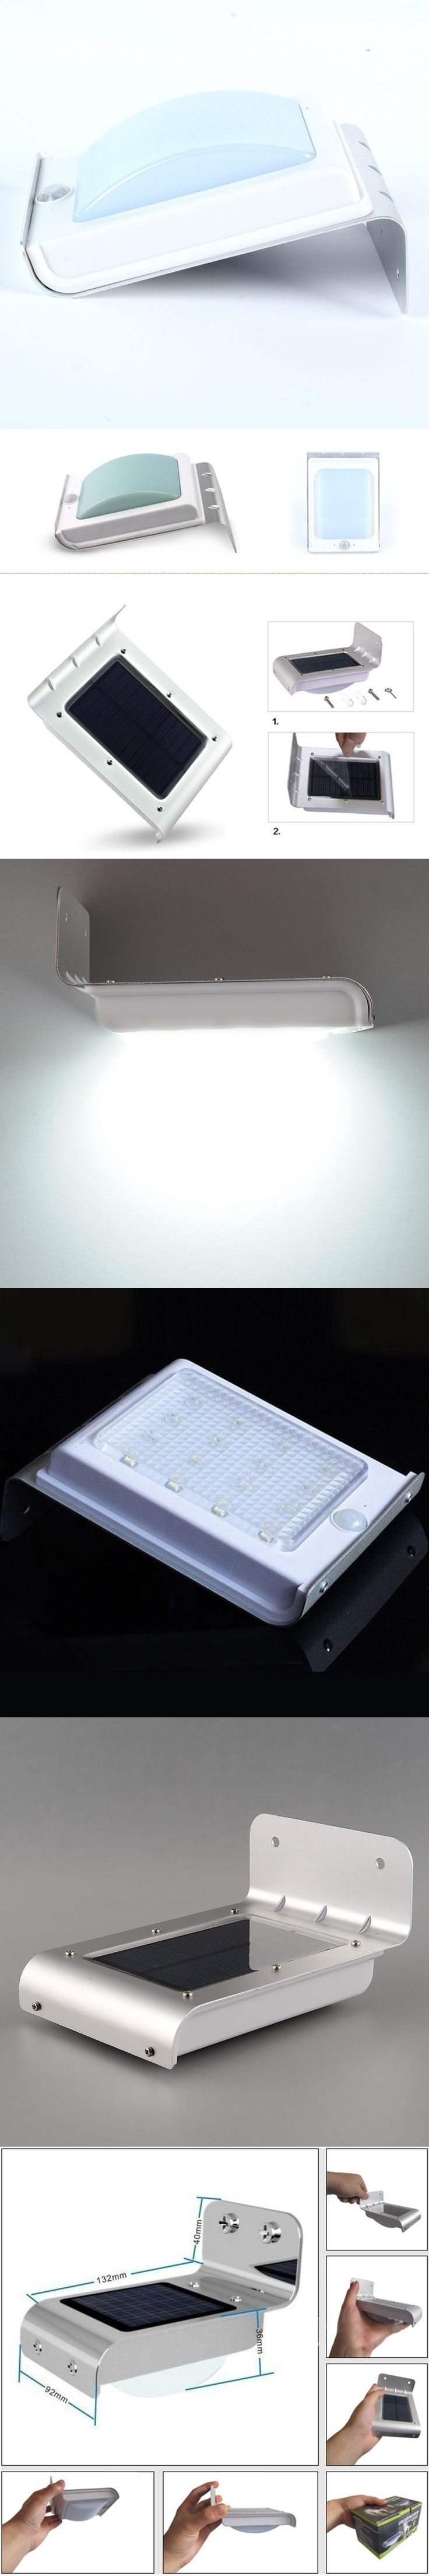 16 LED Sensor Lamp Waterproof wall Lights led lamps with Solar Power Outdoor White LED Lamp Newest